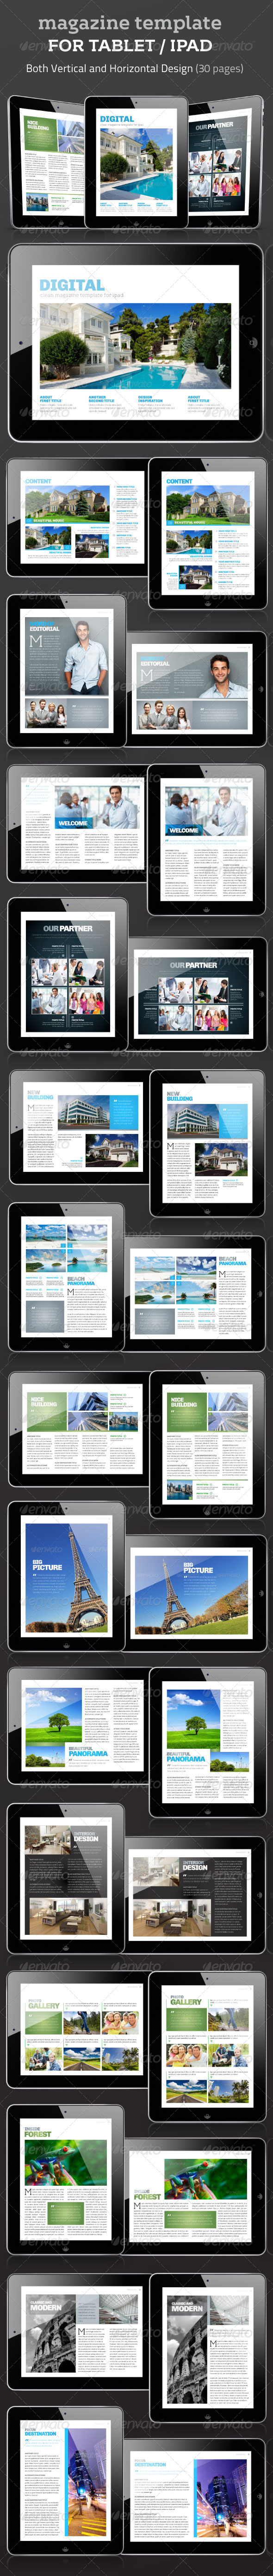 GraphicRiver Tablet 15 Pages Mgz Vol 6 3393500